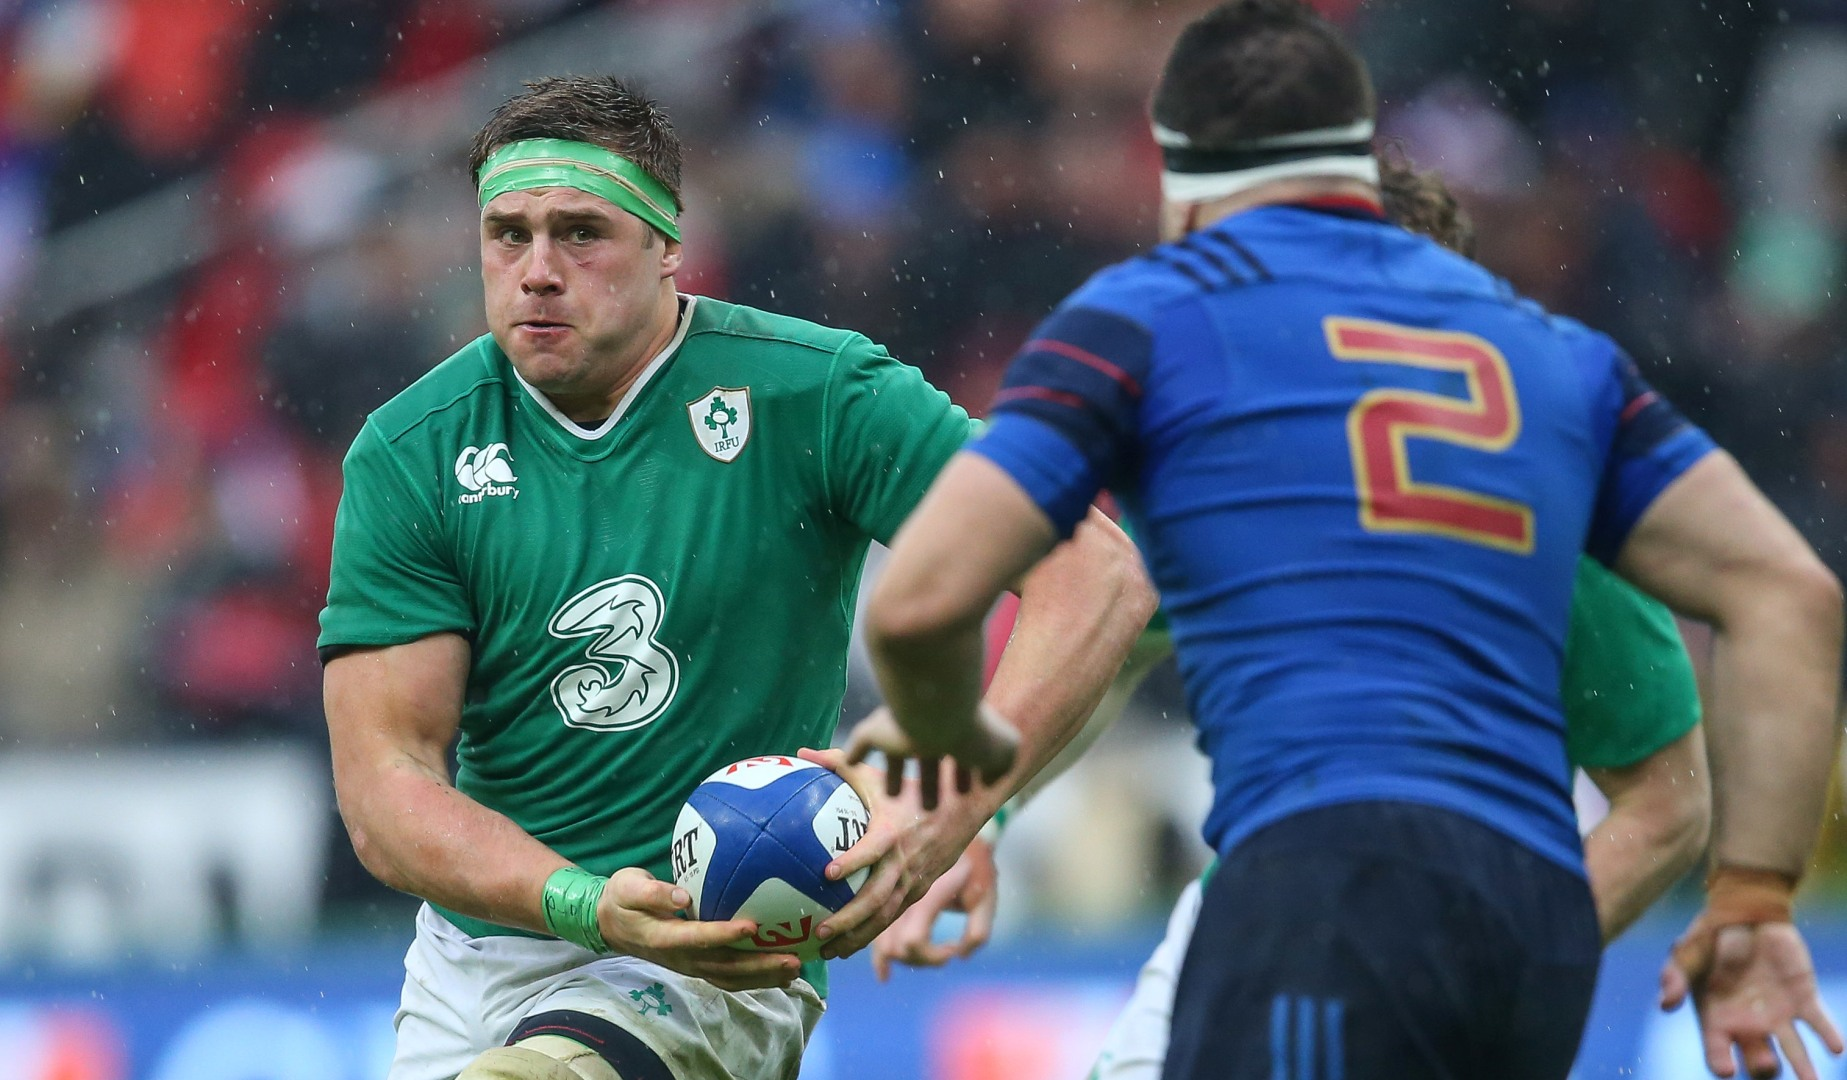 Munster star Stander named Players' Player of the Year